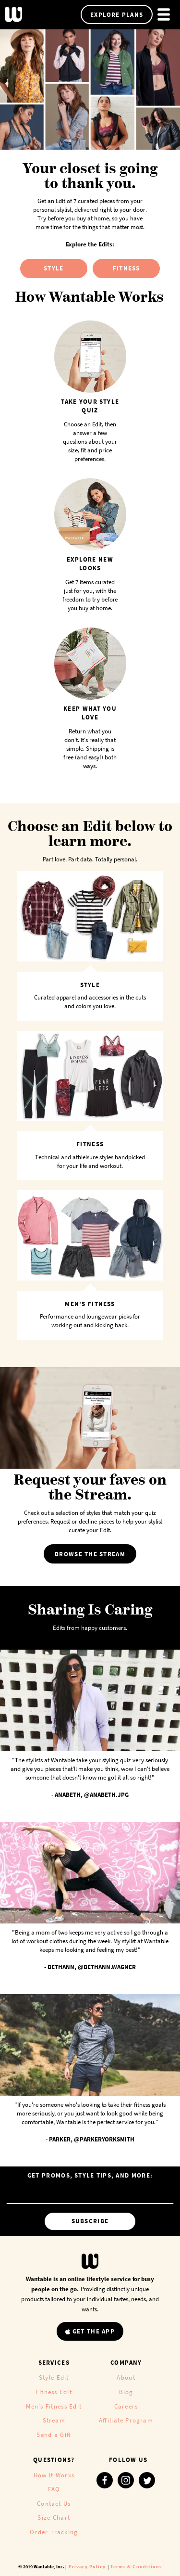 Example of Design for Beauty & Fitness, Mobile Landing Page by wantable.com | Mobile Landing Page Design